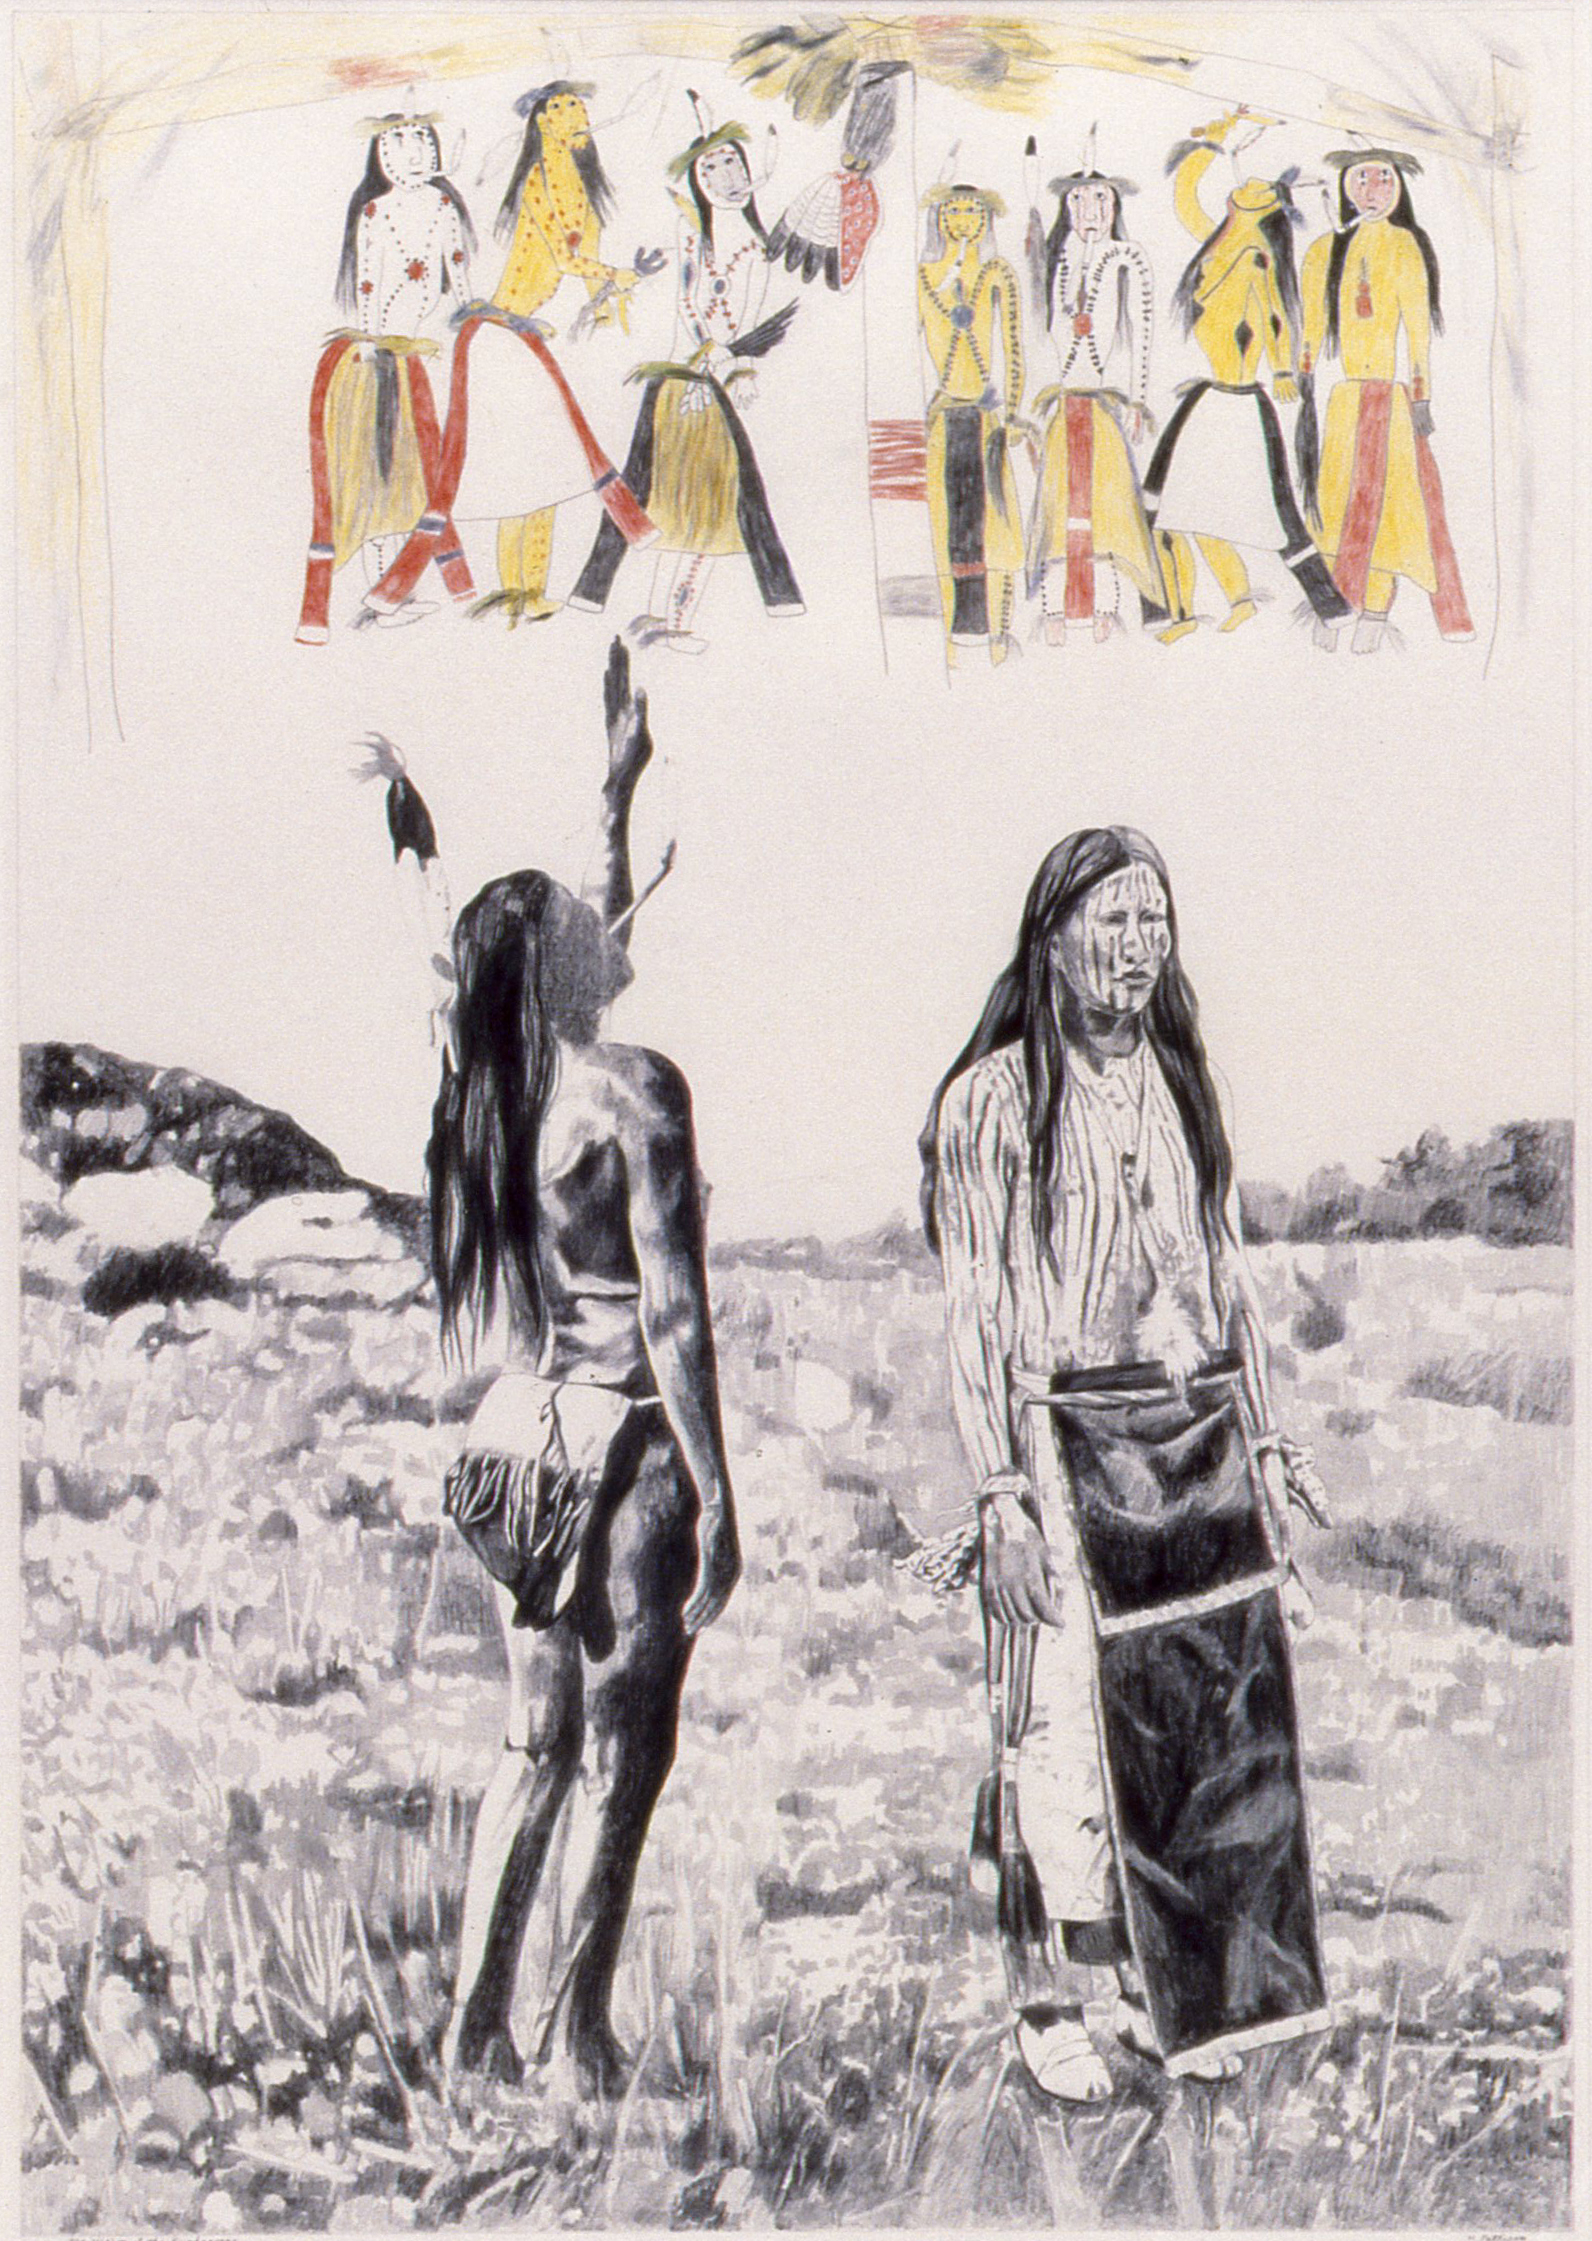 Vision of the Sun Dancers, graphite and colored pencils on Arches, 39 x 29 inches  Private collection, Bellingham, Washington